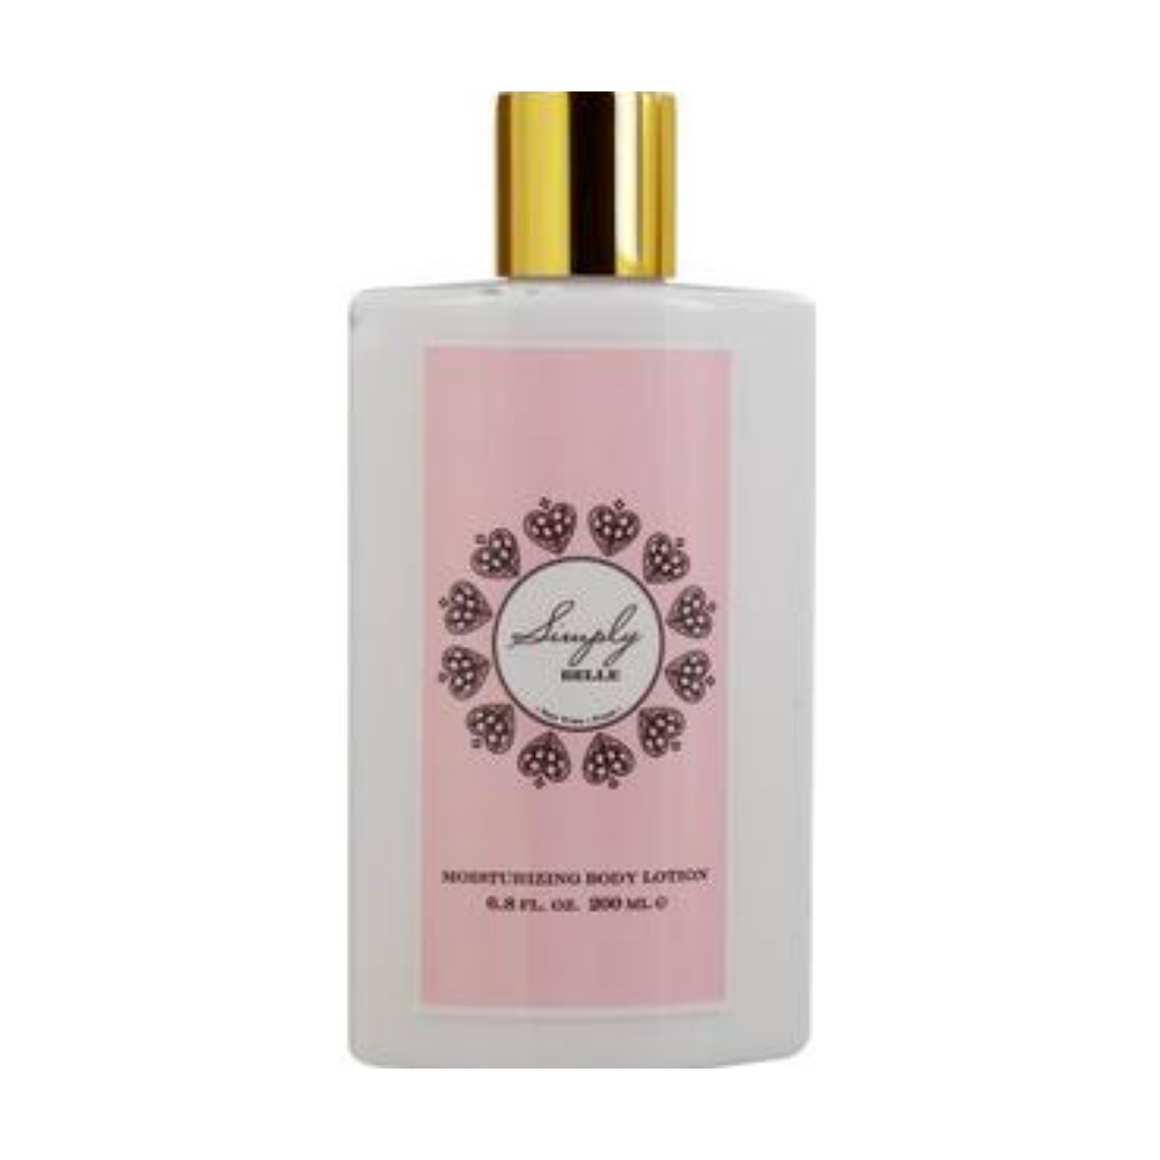 SIMPLY BELLE BODY LOTION 200ML